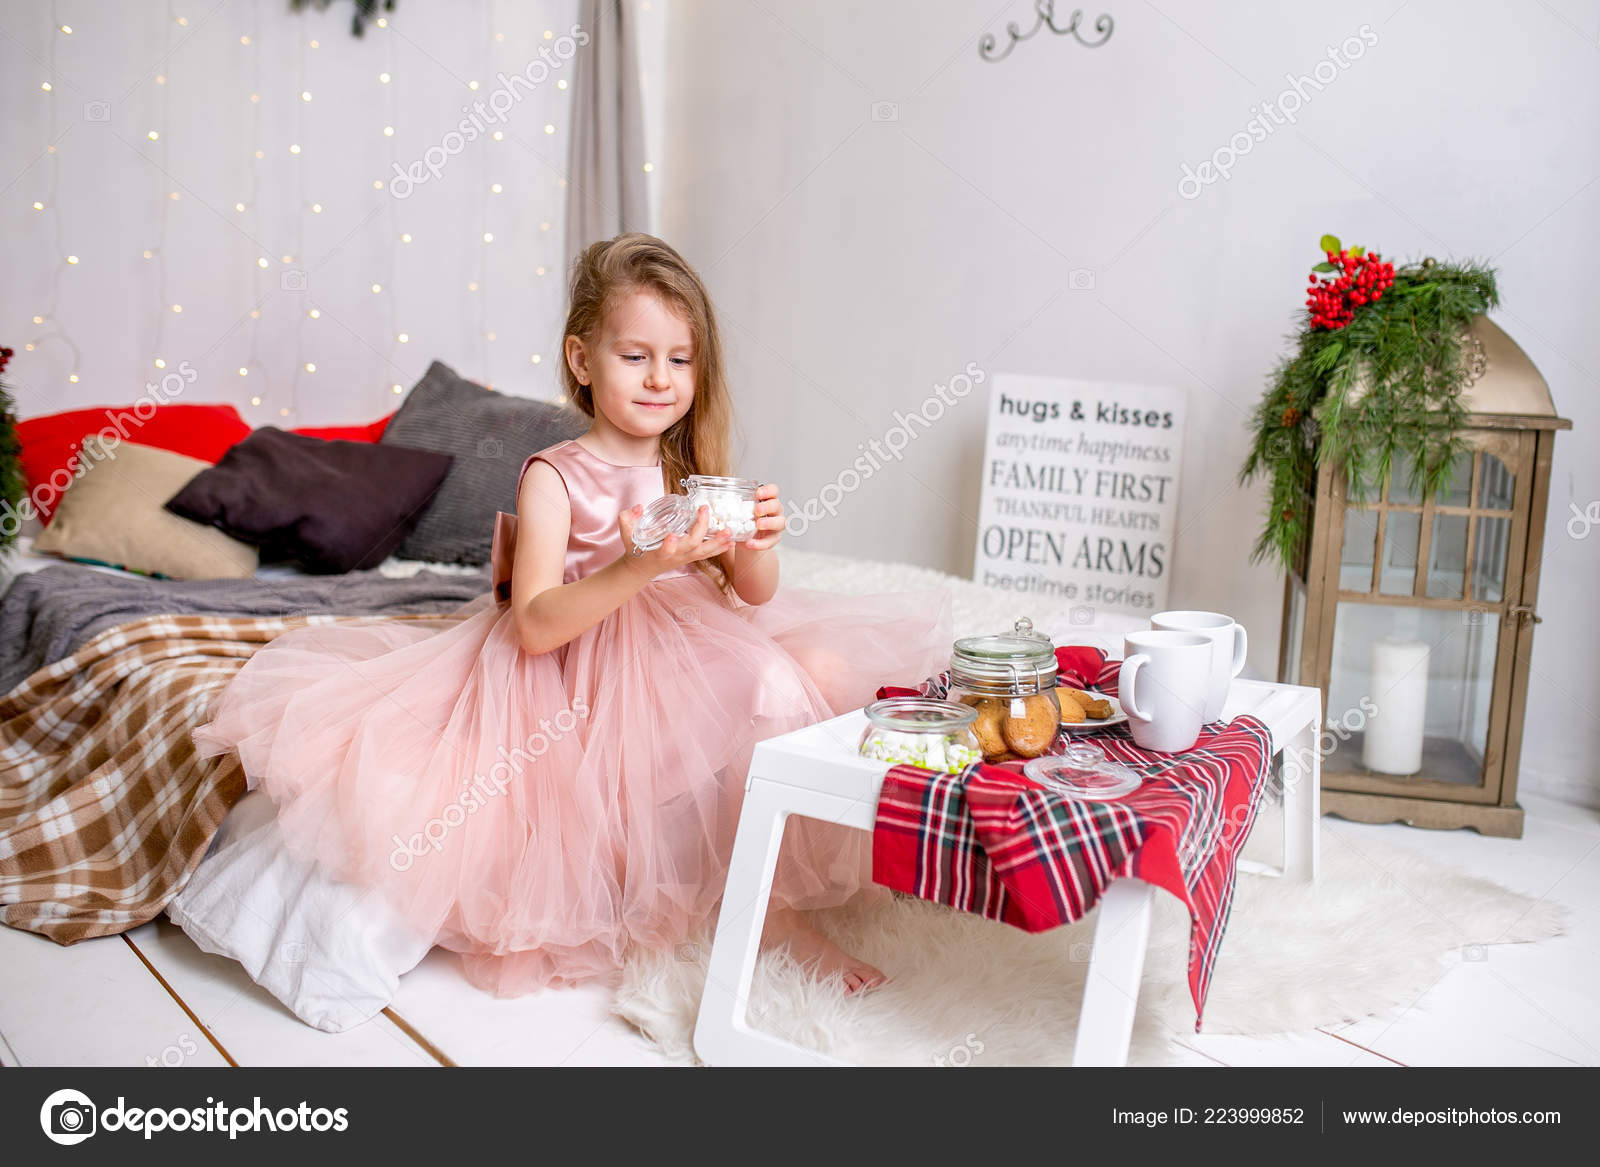 Pretty Little Girl Years Old Pink Dress Child Christmas Room Stock Photo Image By C Goodcat88 223999852